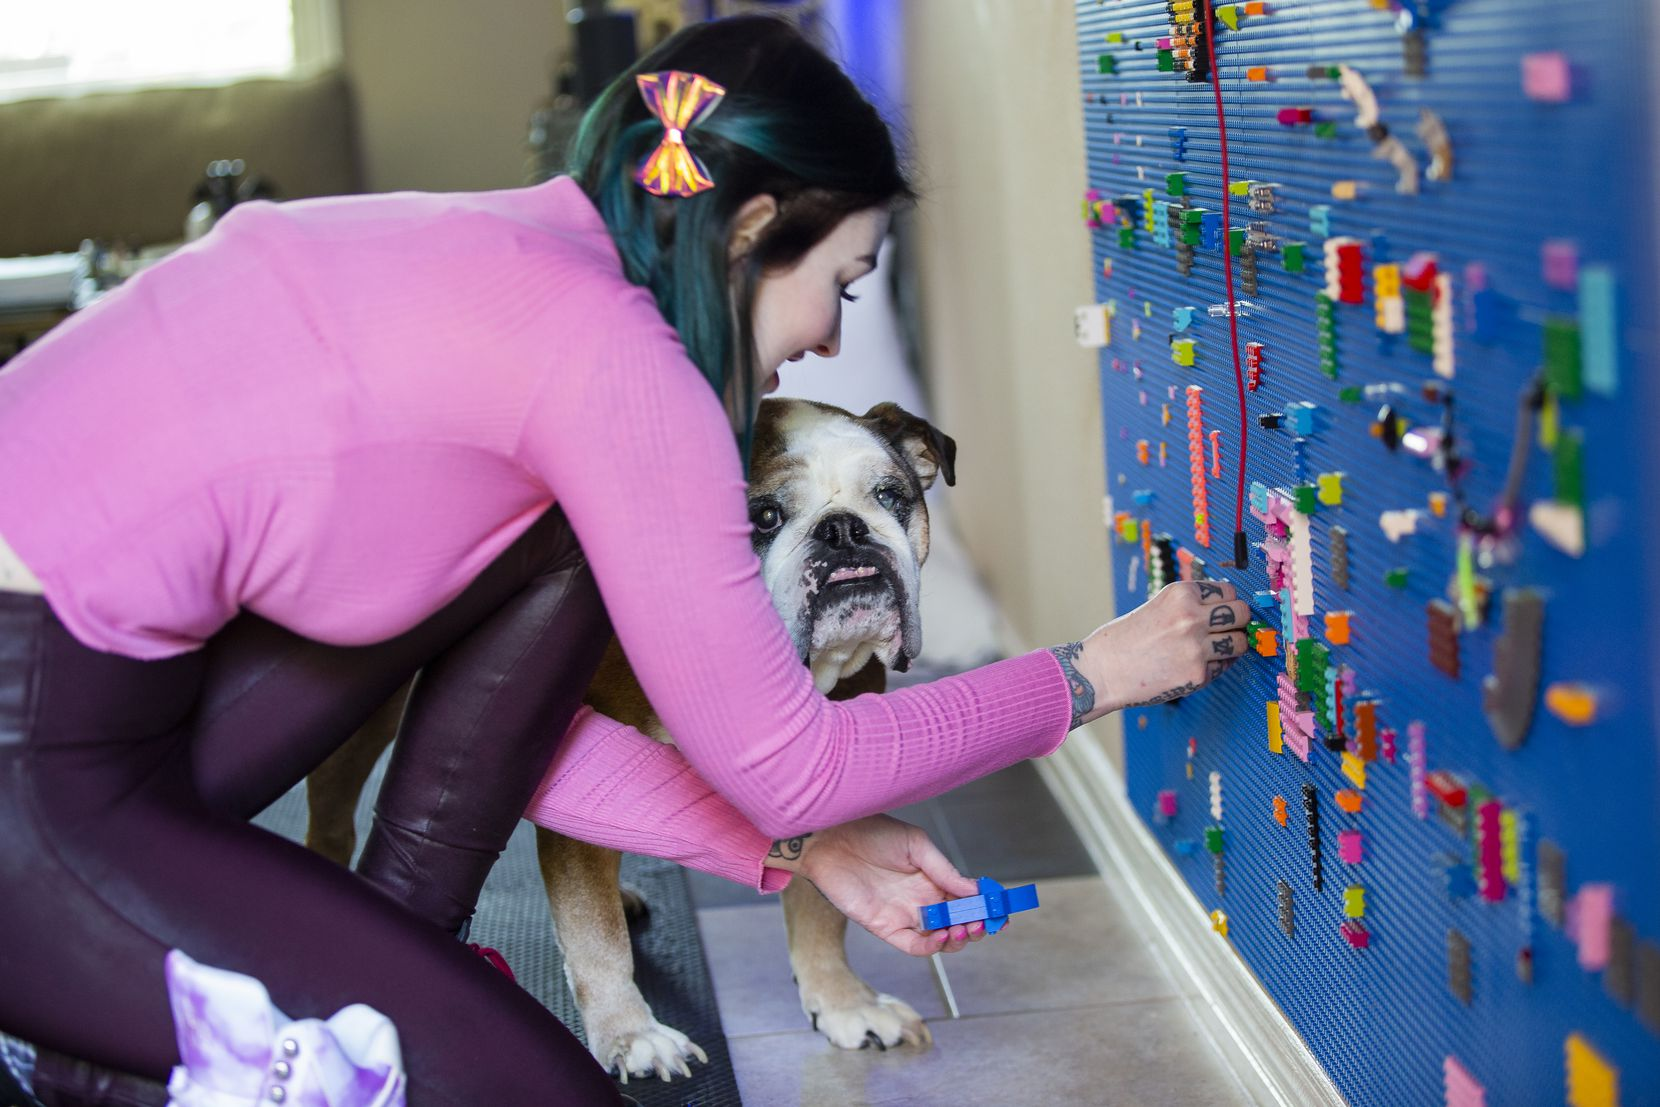 Amie Dansby and her dog, Indy, make some changes to Dansby's interactive Lego wall.